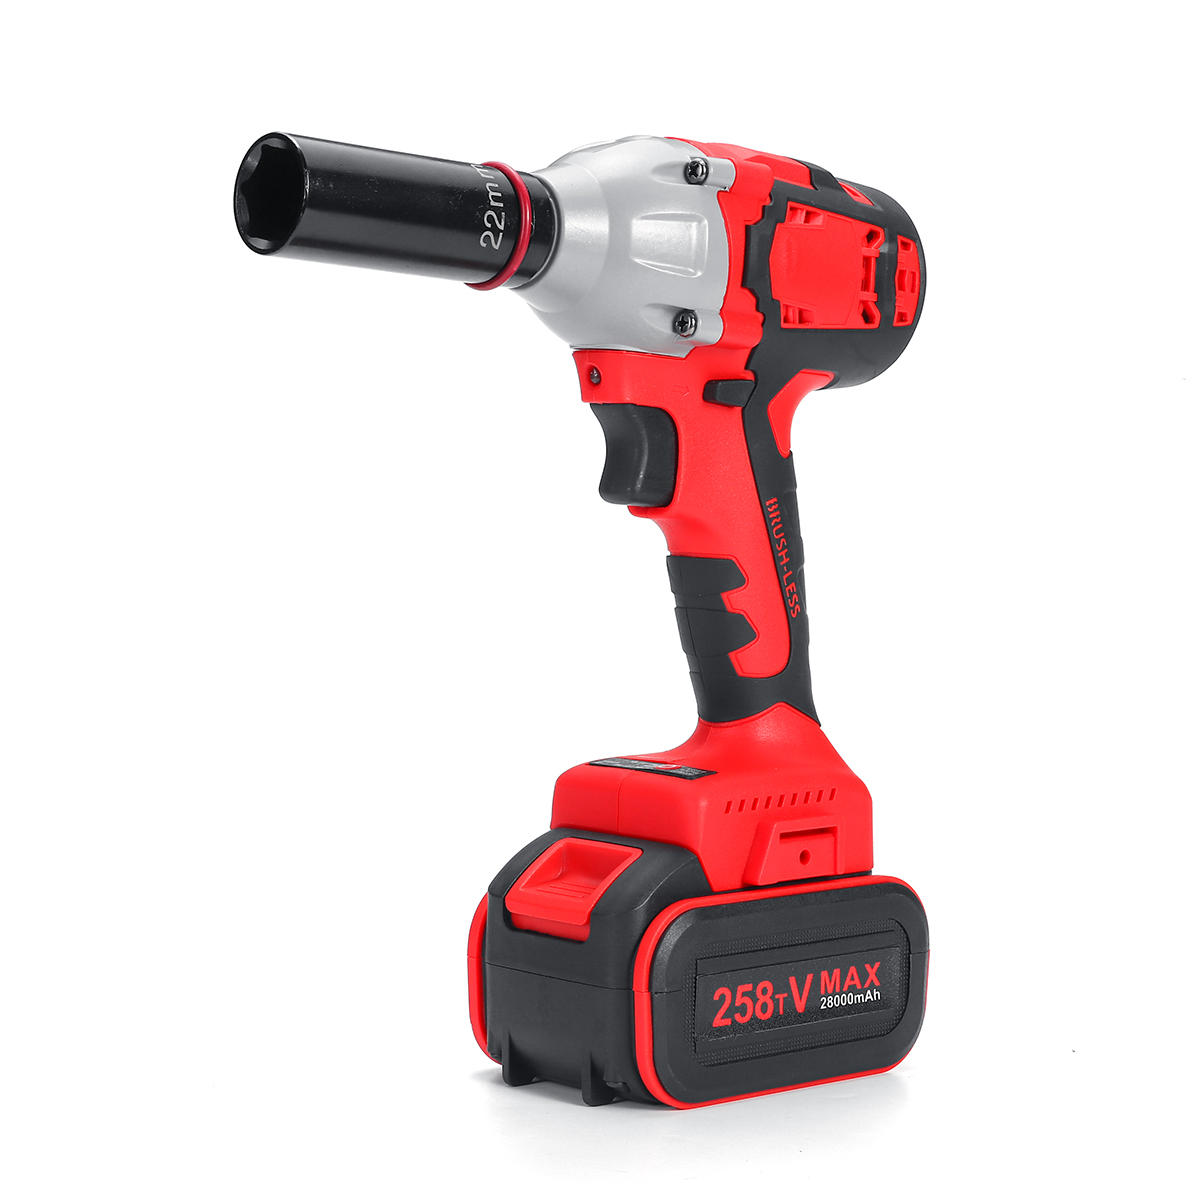 28000mAh Electric Wrench Power Drill Brushless Impact Wrench Socket Wrench 21V Li...